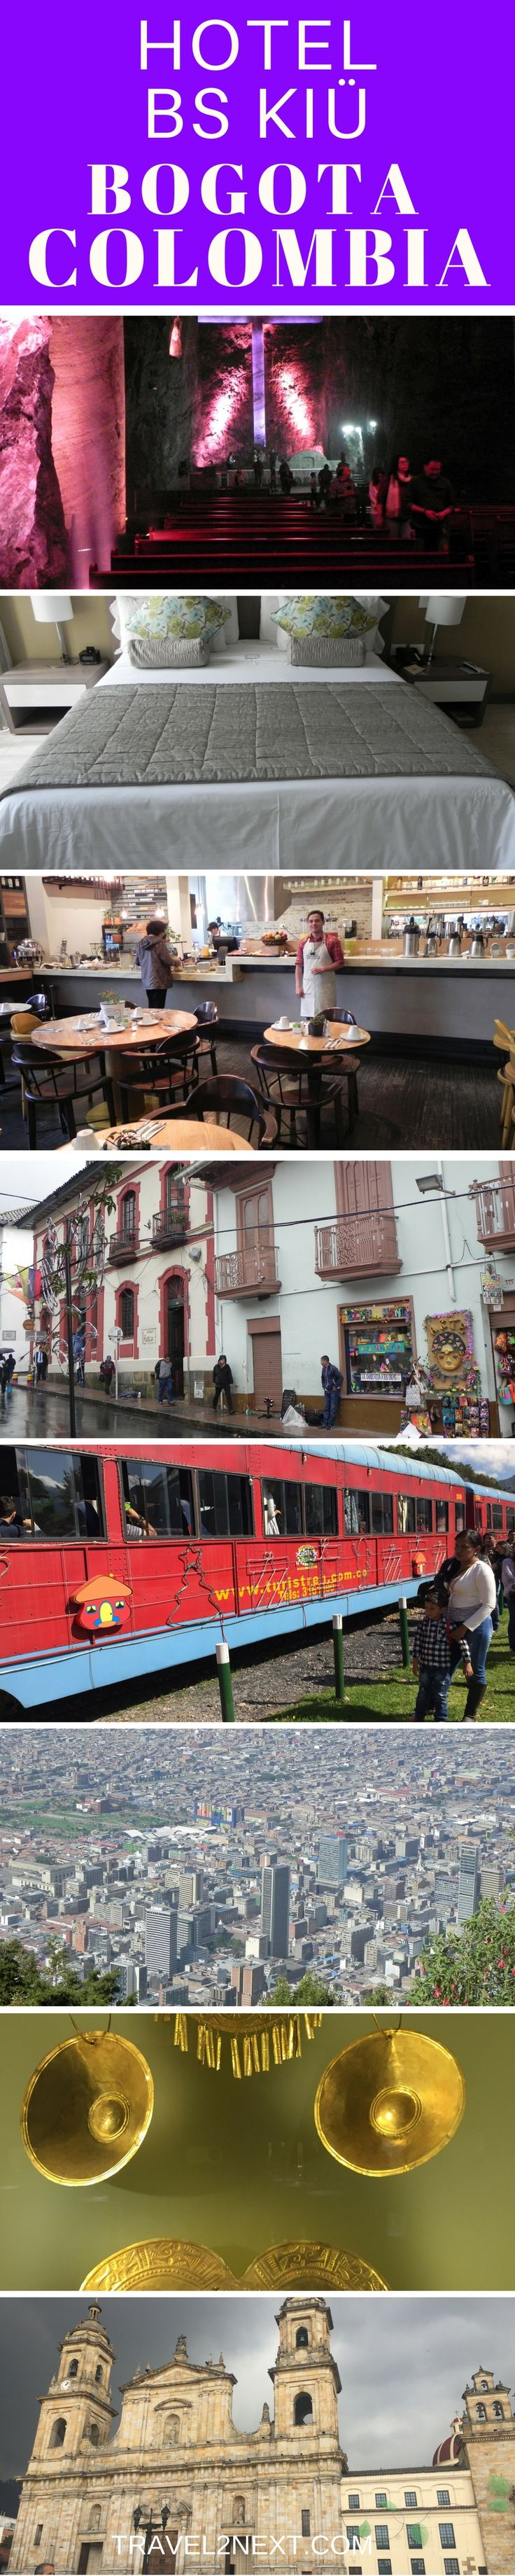 Hotel Bs Kiü Bogota in Colombia. Hotel review and other attractions in Colombia.